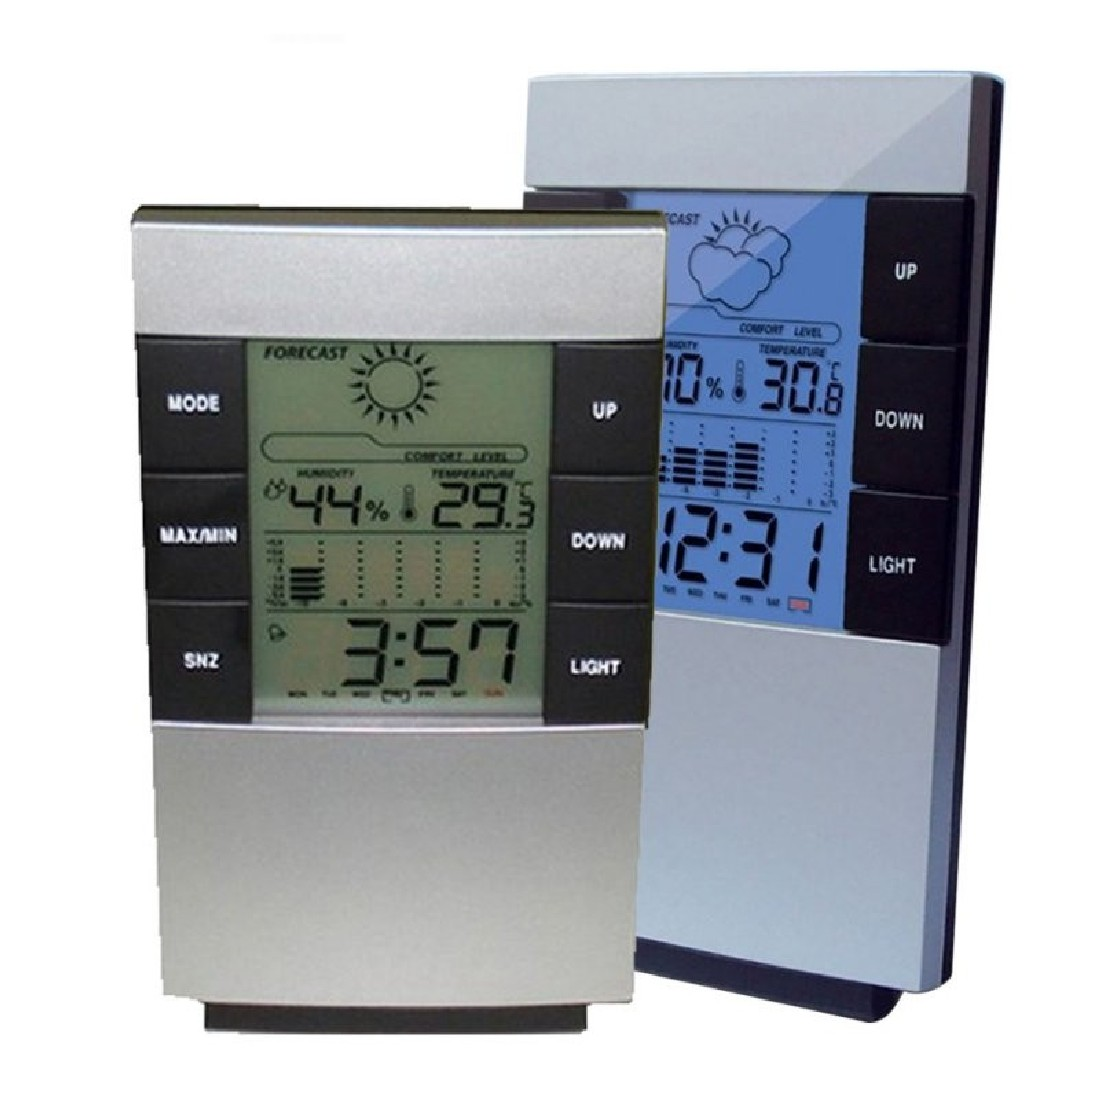 Fashion Multifunctional Home Humidity Thermometer Lcd Digital Hygrometer Temperature Meter Clock Measurement Device digital indoor air quality carbon dioxide meter temperature rh humidity twa stel display 99 points made in taiwan co2 monitor